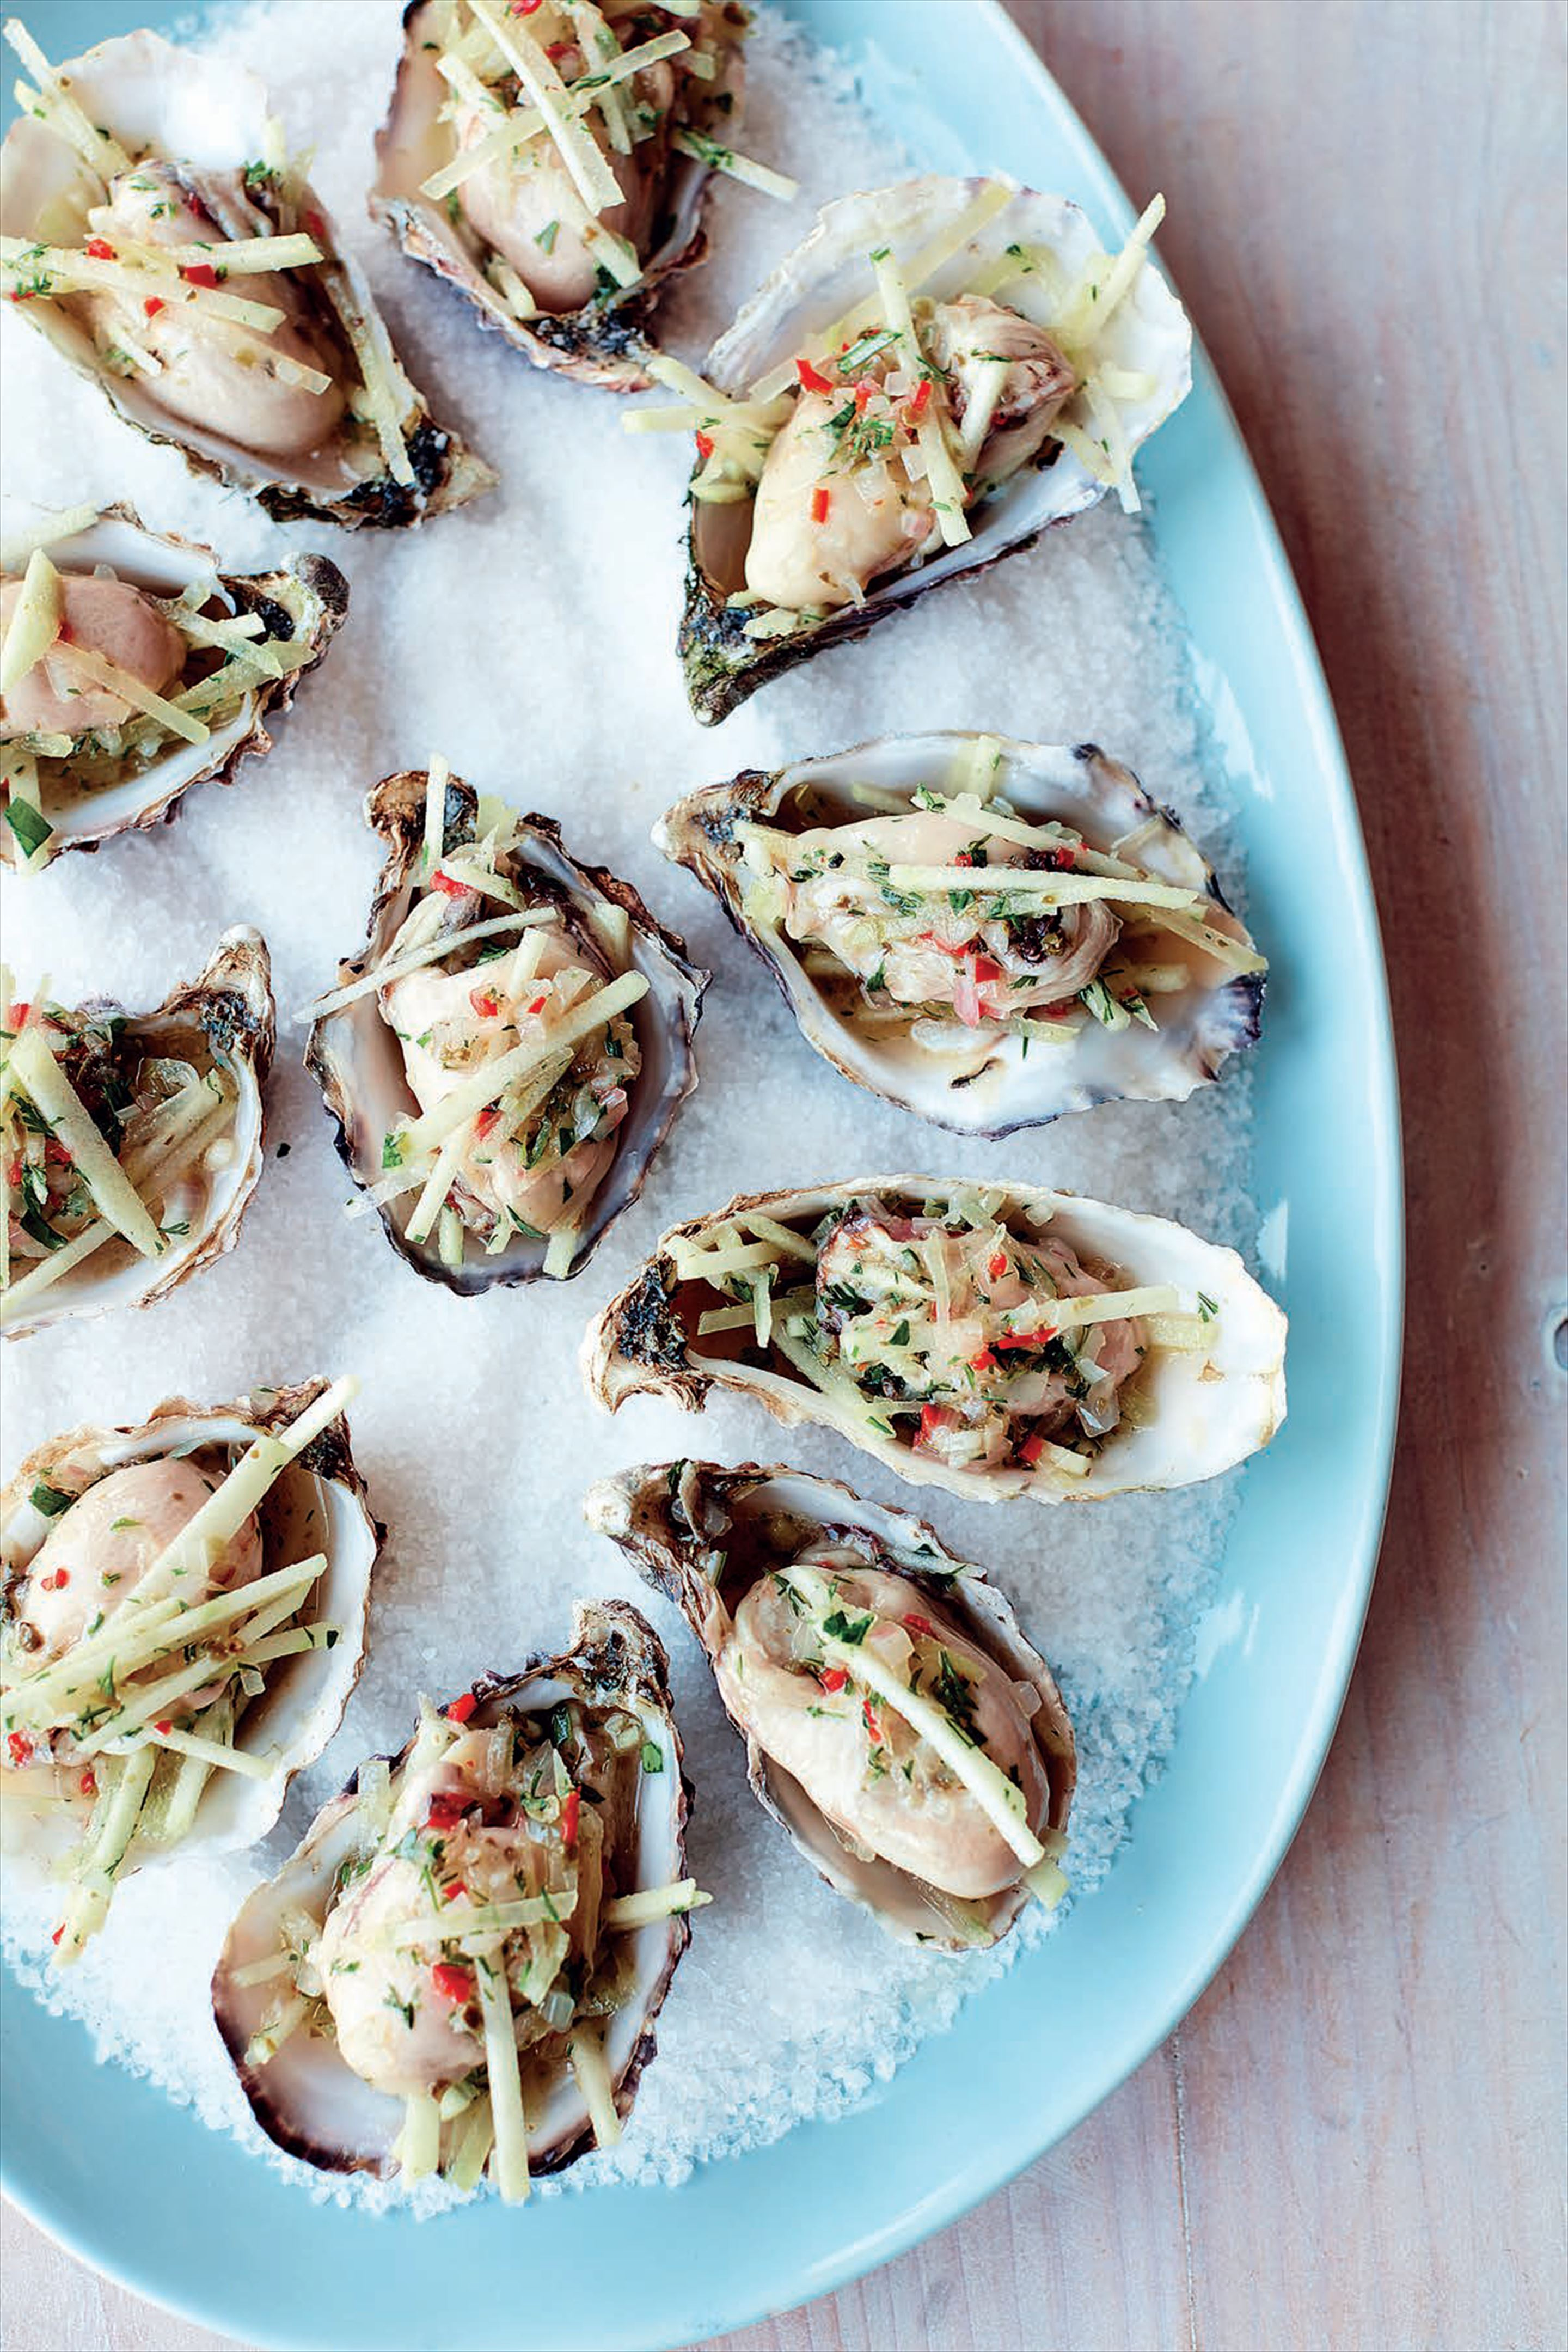 Cider-pickled oysters with shallot, caper and apple relish